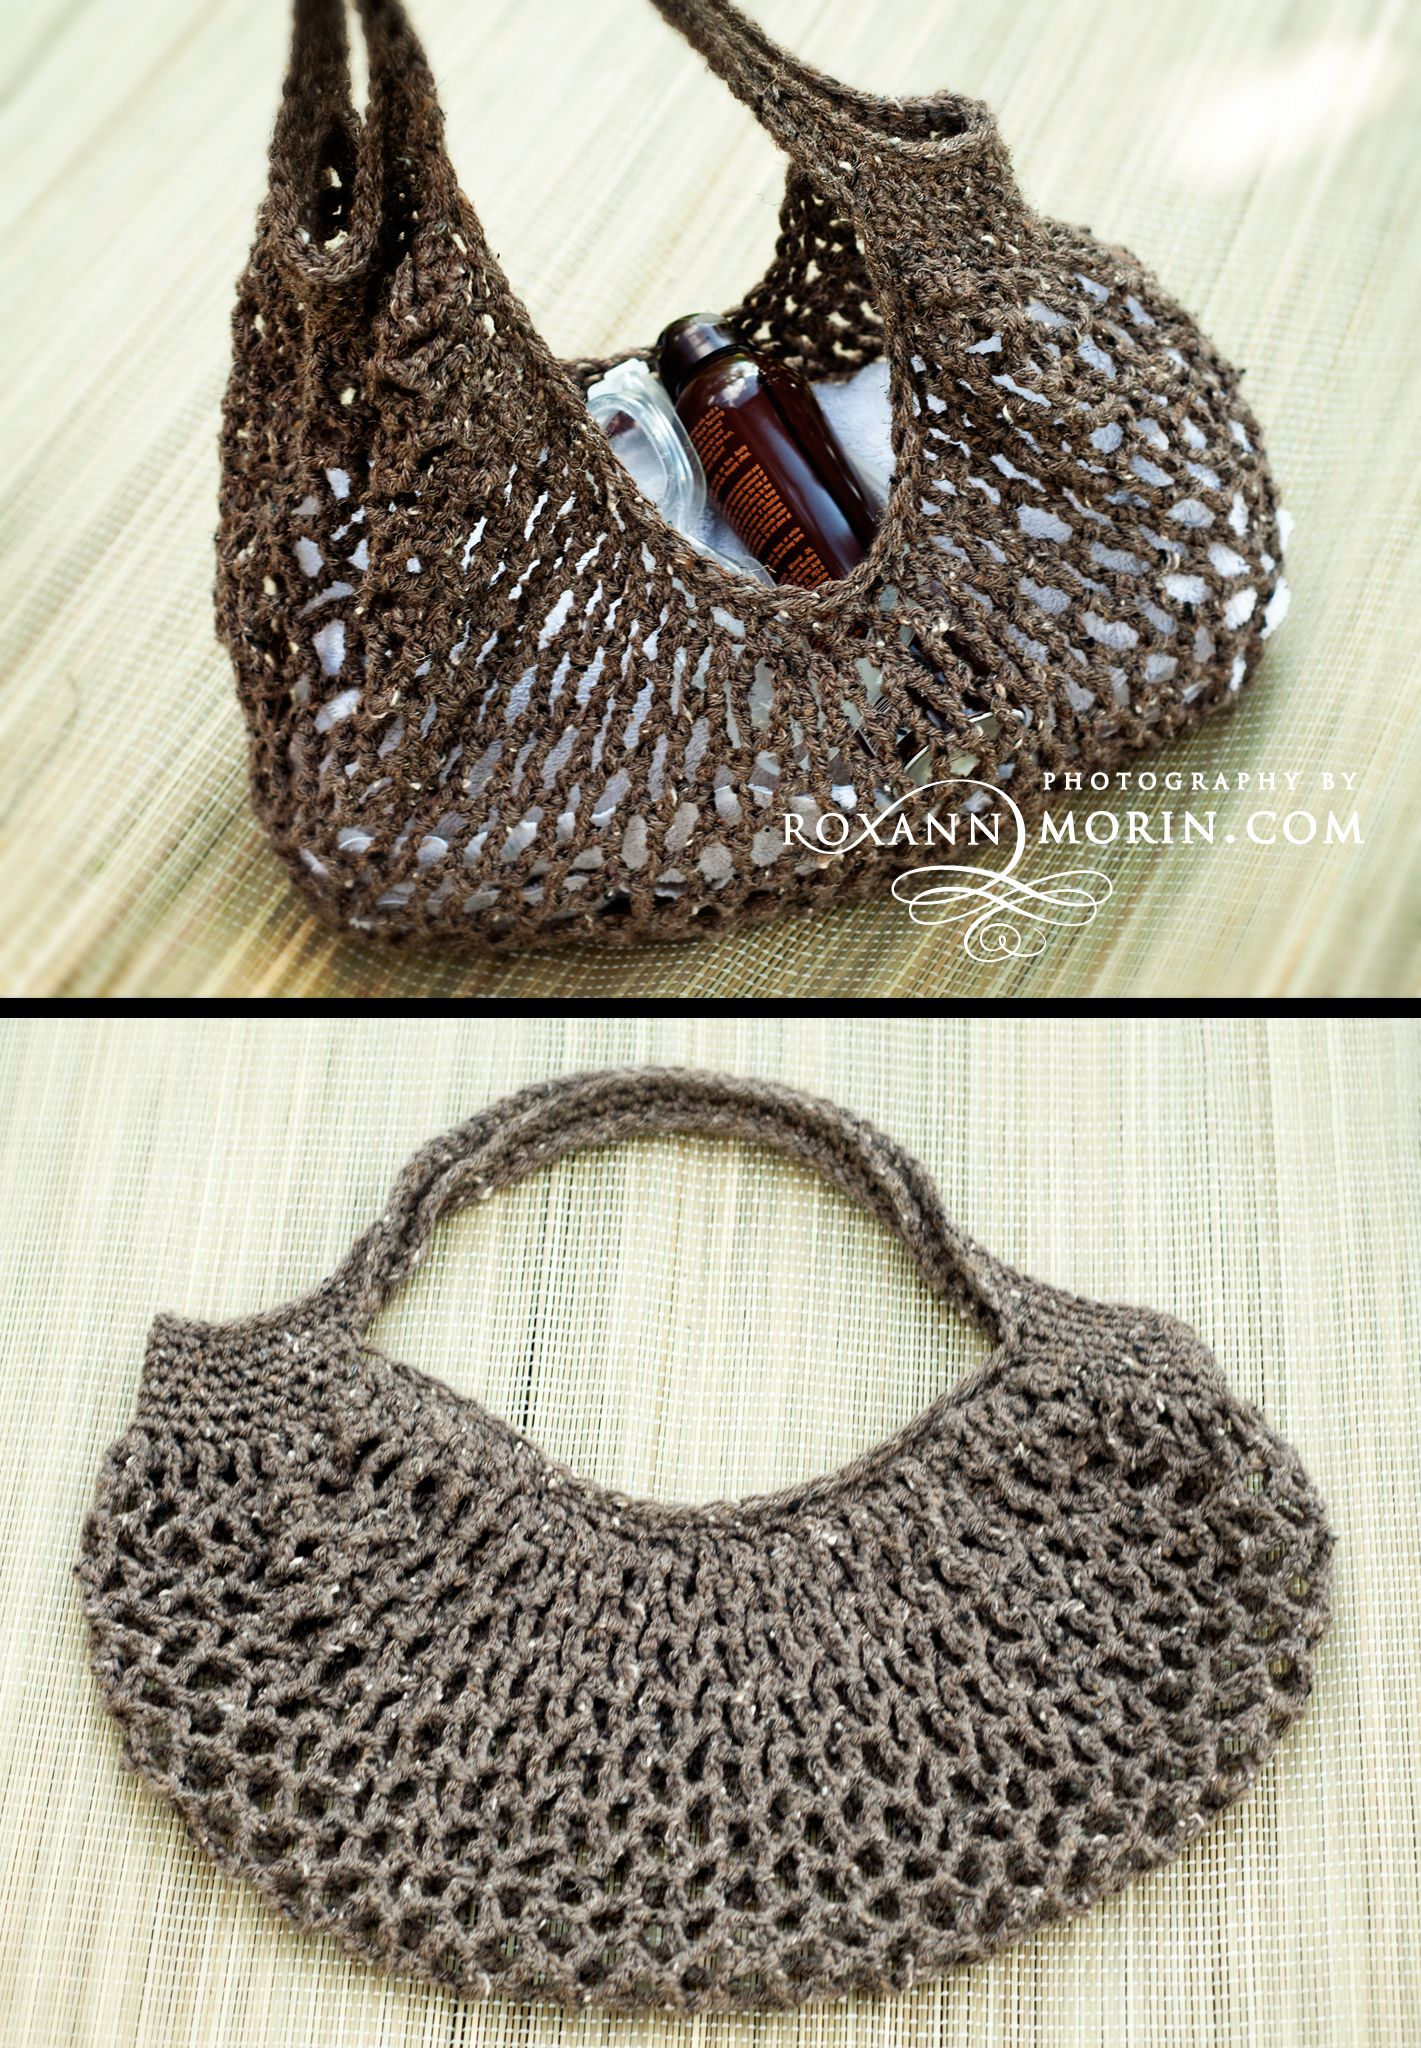 Easy Crochet Mesh Bag Pattern : EclecticCrochets Pool Bag Free crochet bag